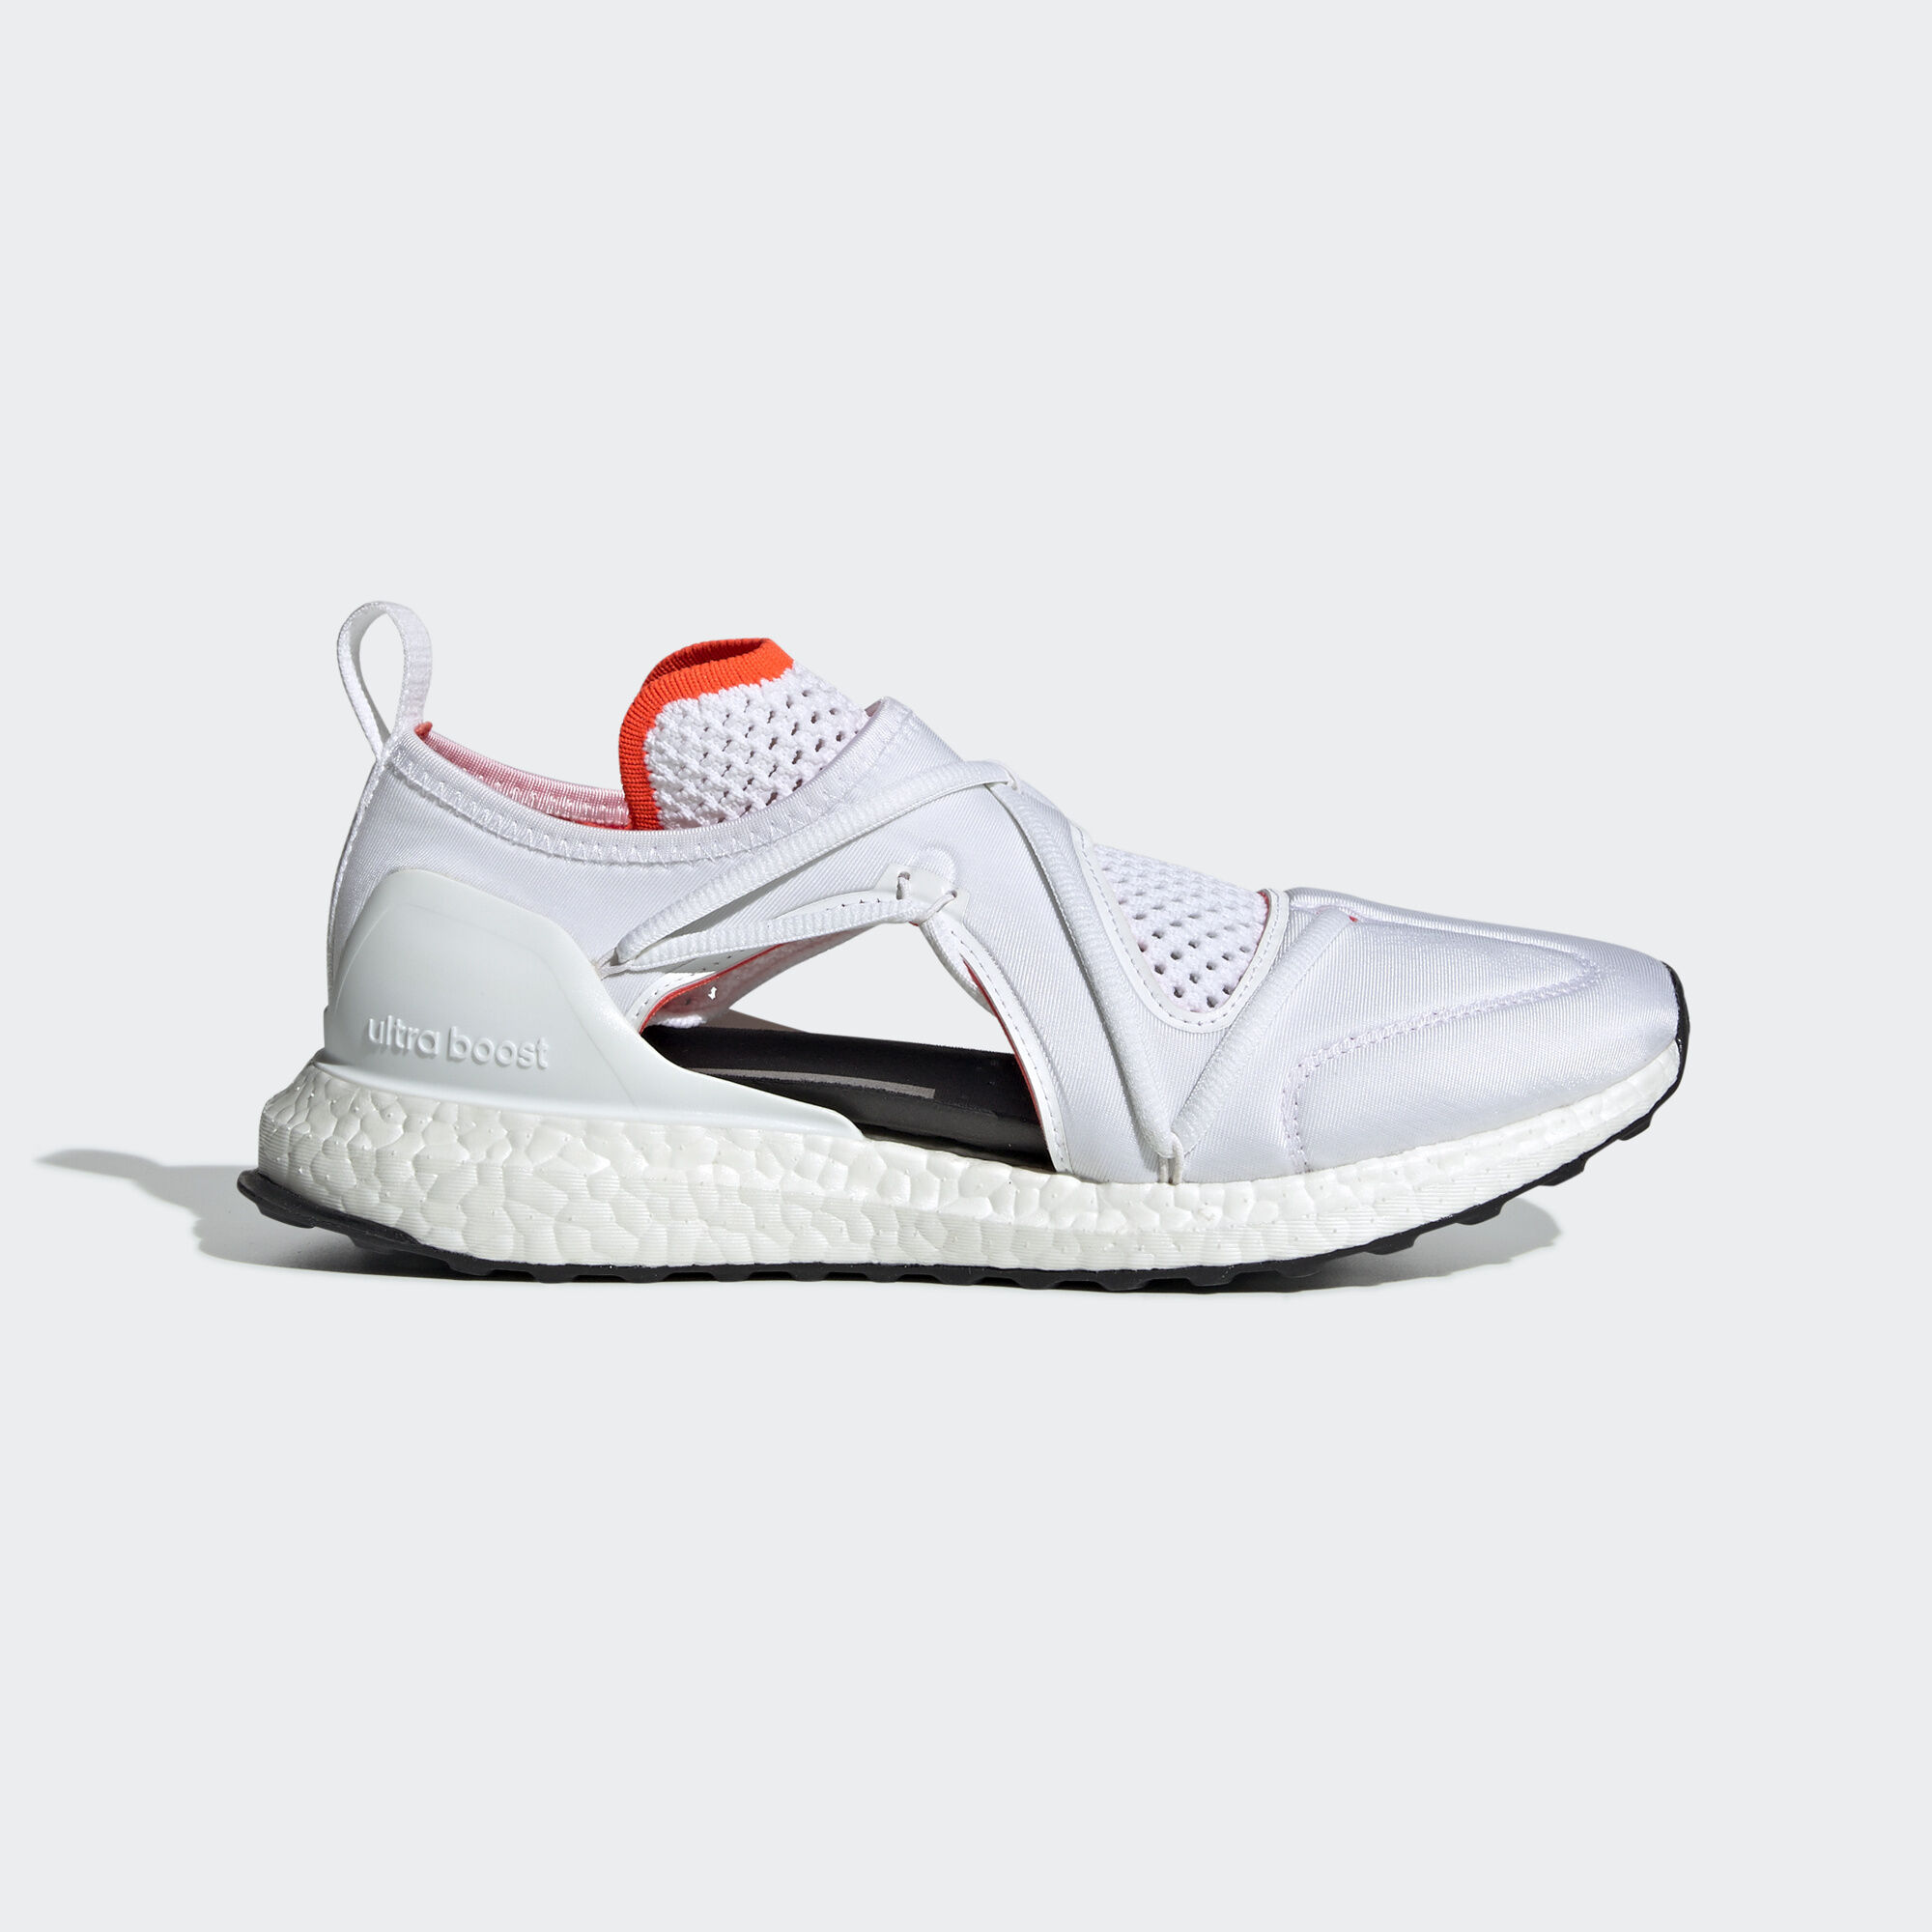 finest selection 53ae3 9efb1 adidas - Ultraboost T Shoes Core White   Core Black   Solar Red D97722